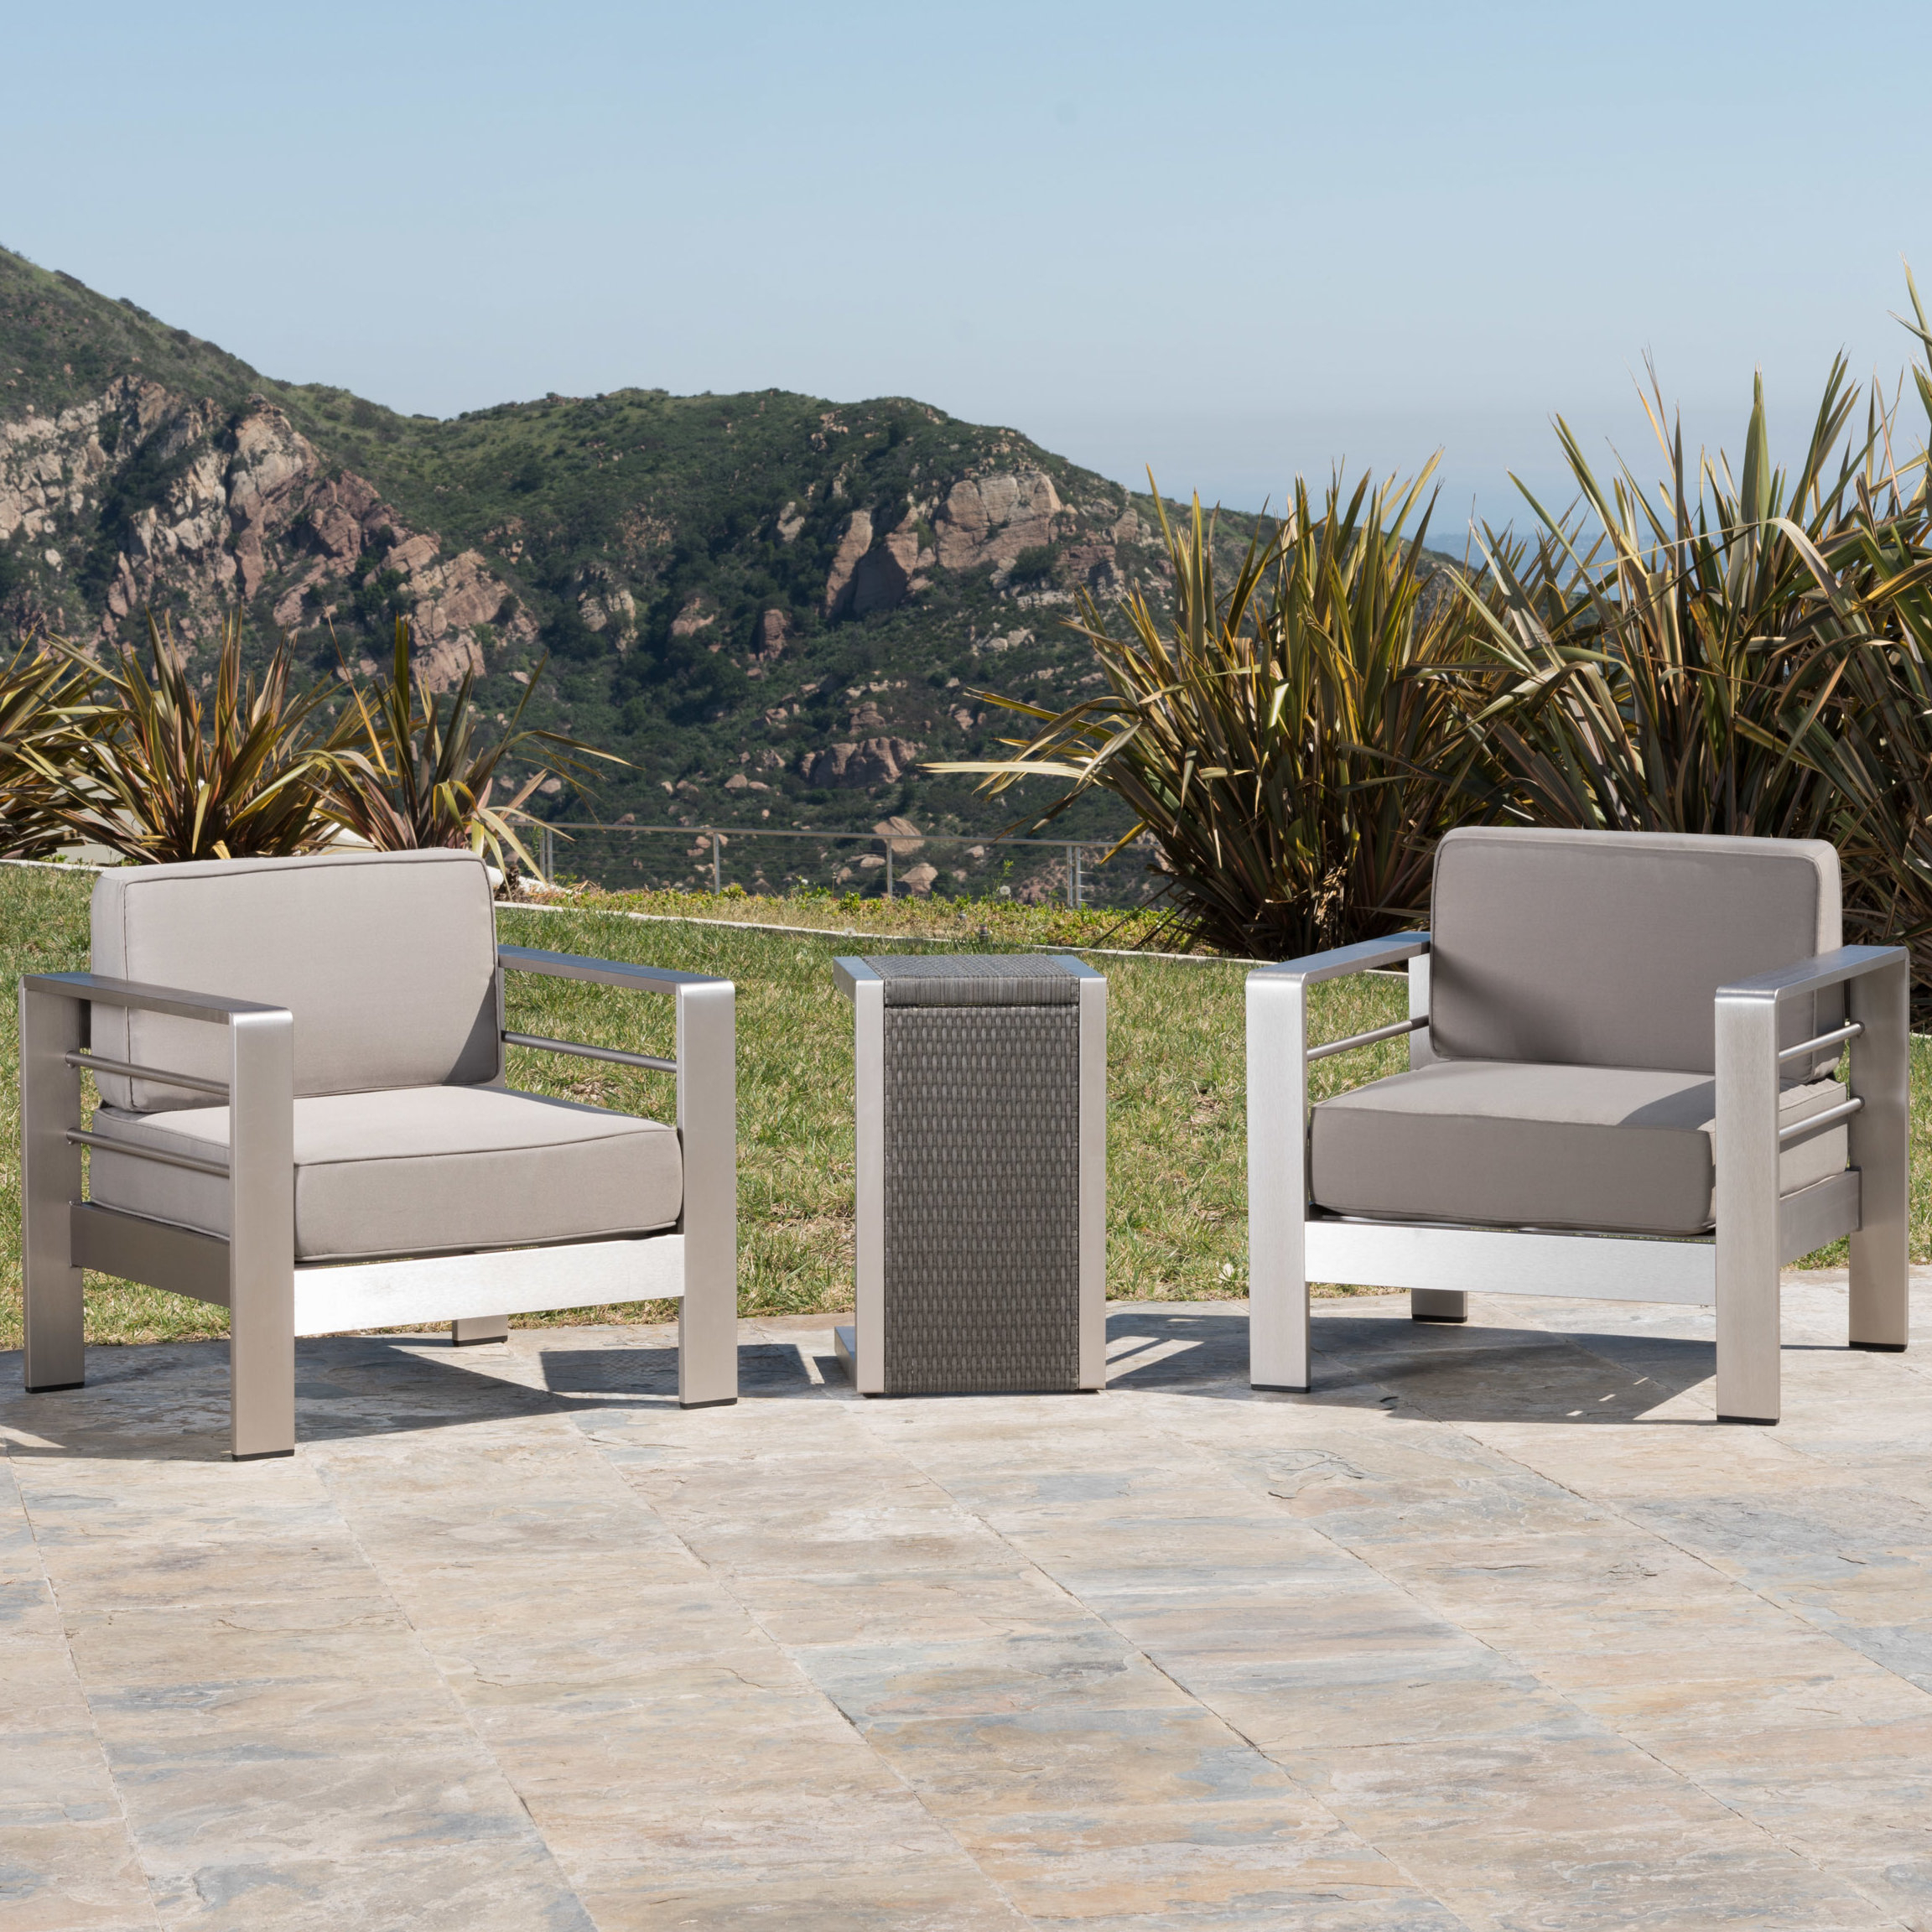 2019 Royalston 3 Piece Conversation Set With Cushions Intended For Royalston Patio Sofas With Cushions (View 14 of 20)